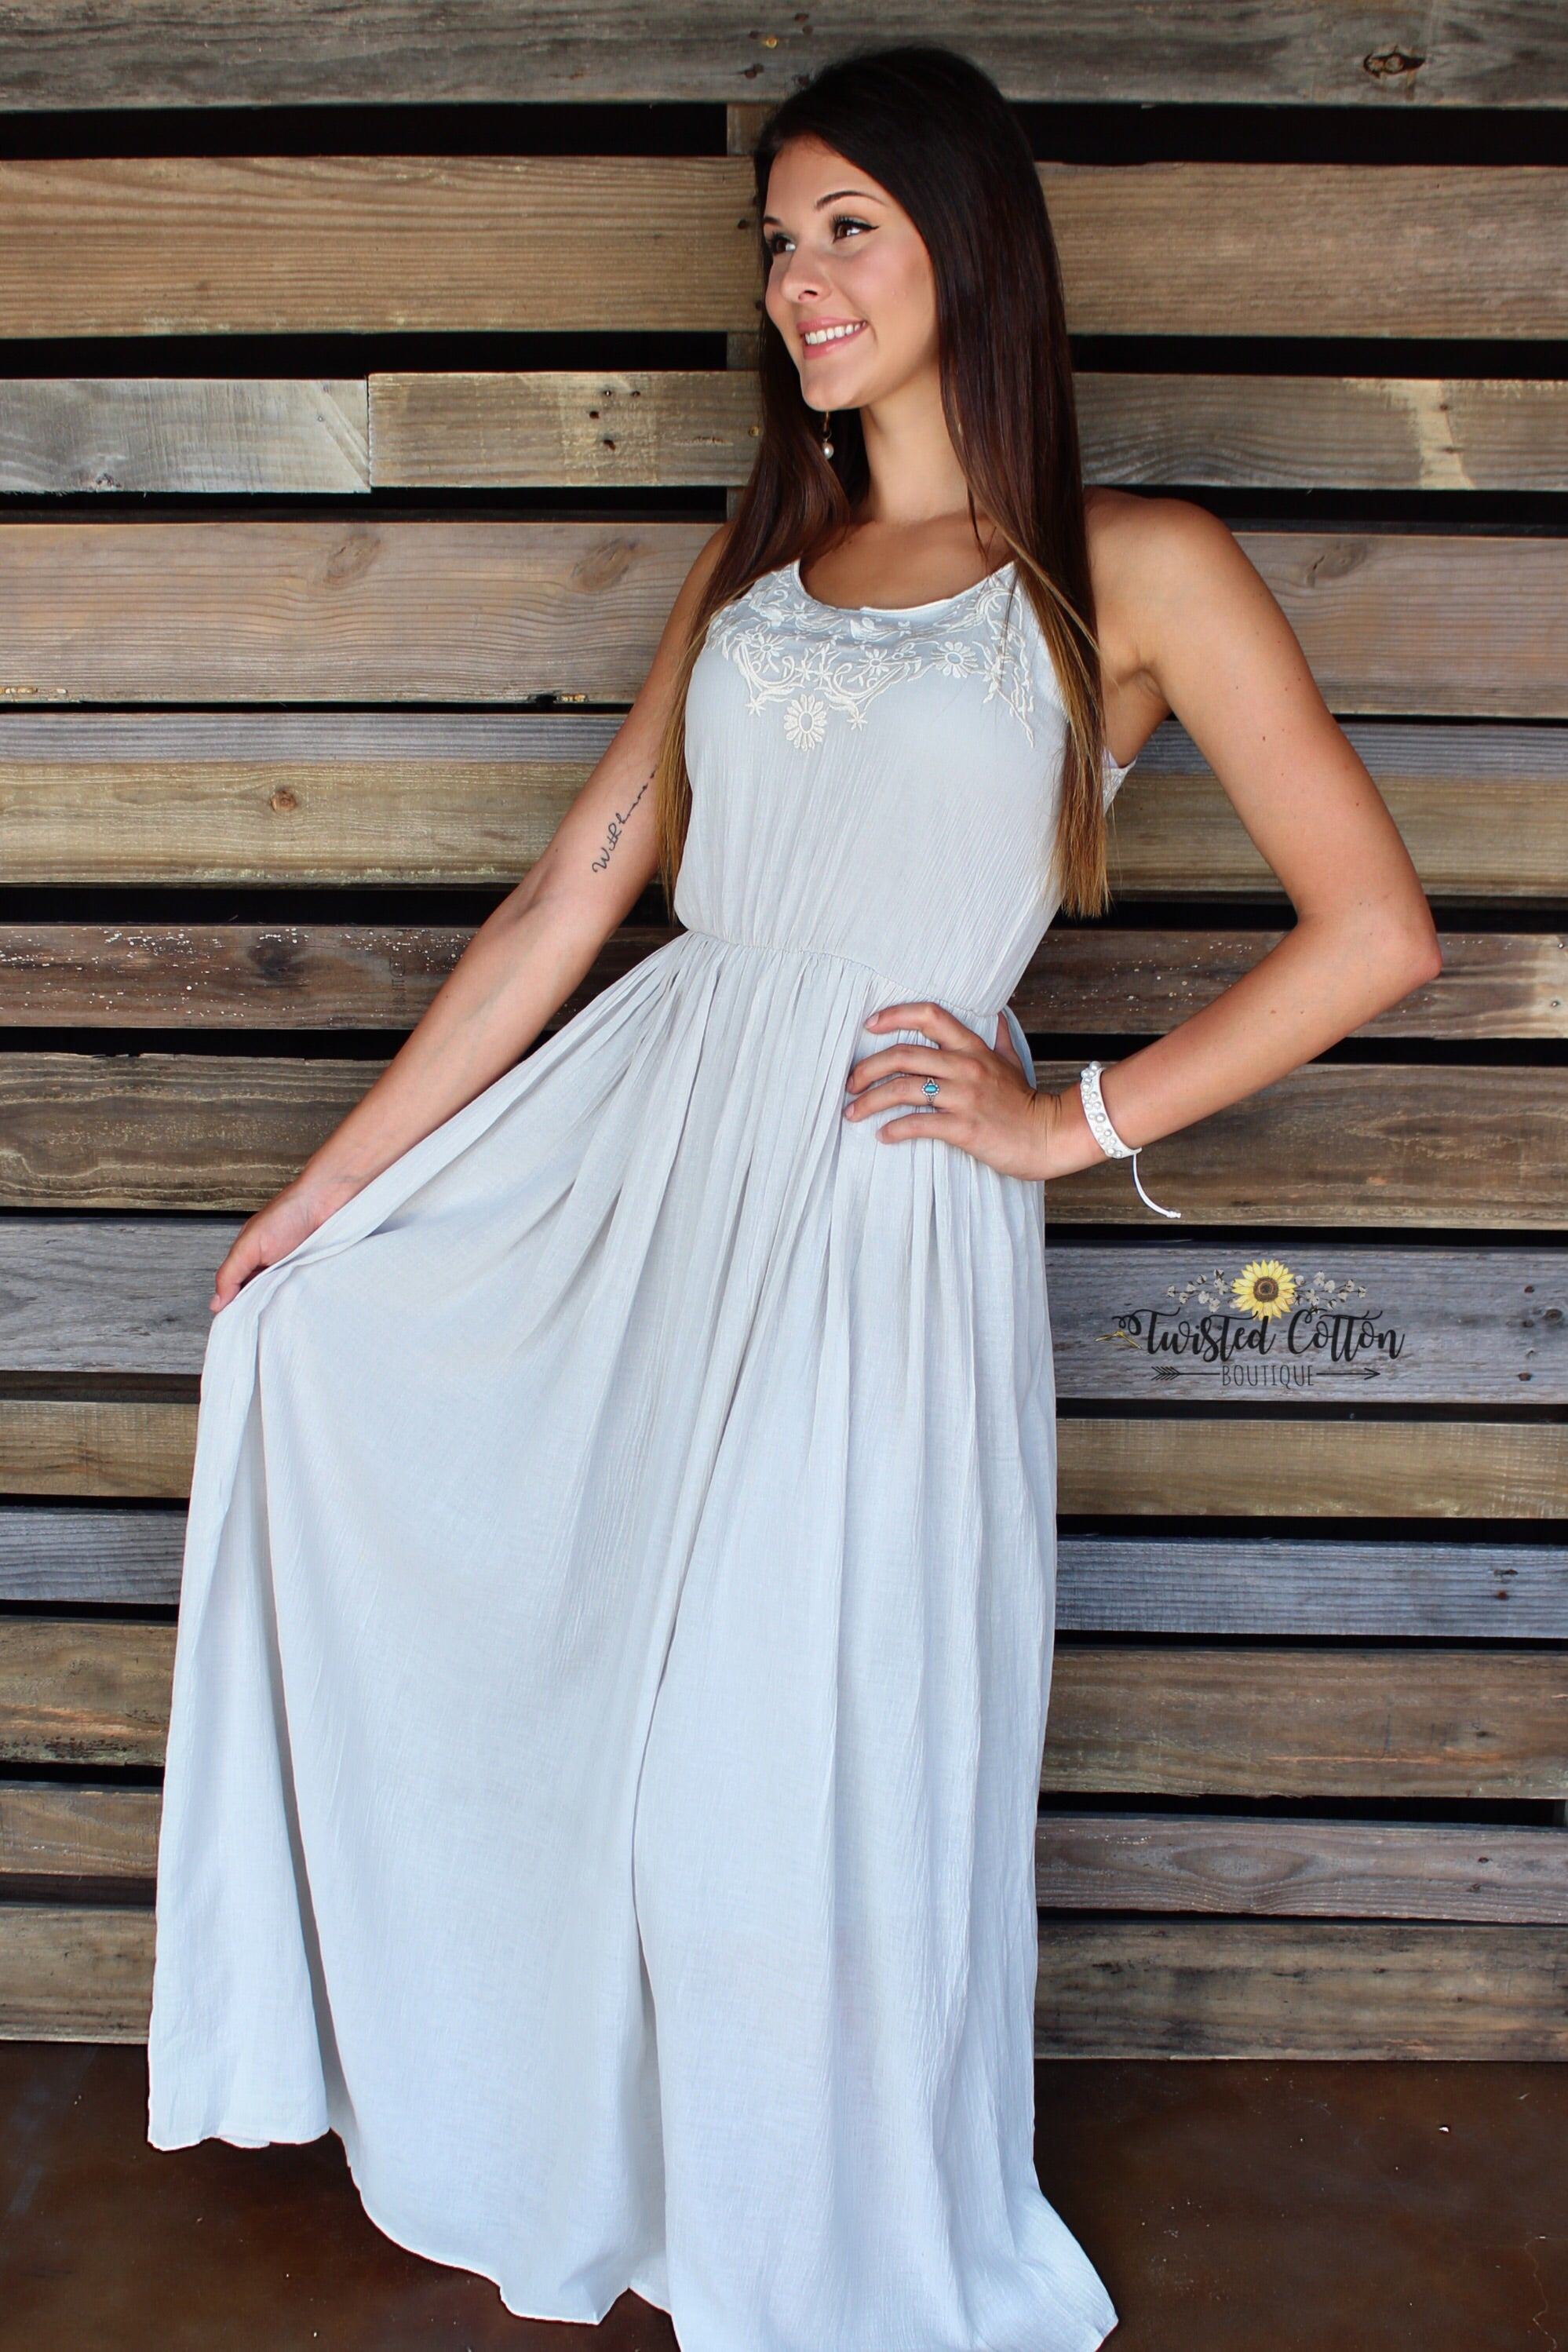 Cinderella by Day Maxi dress